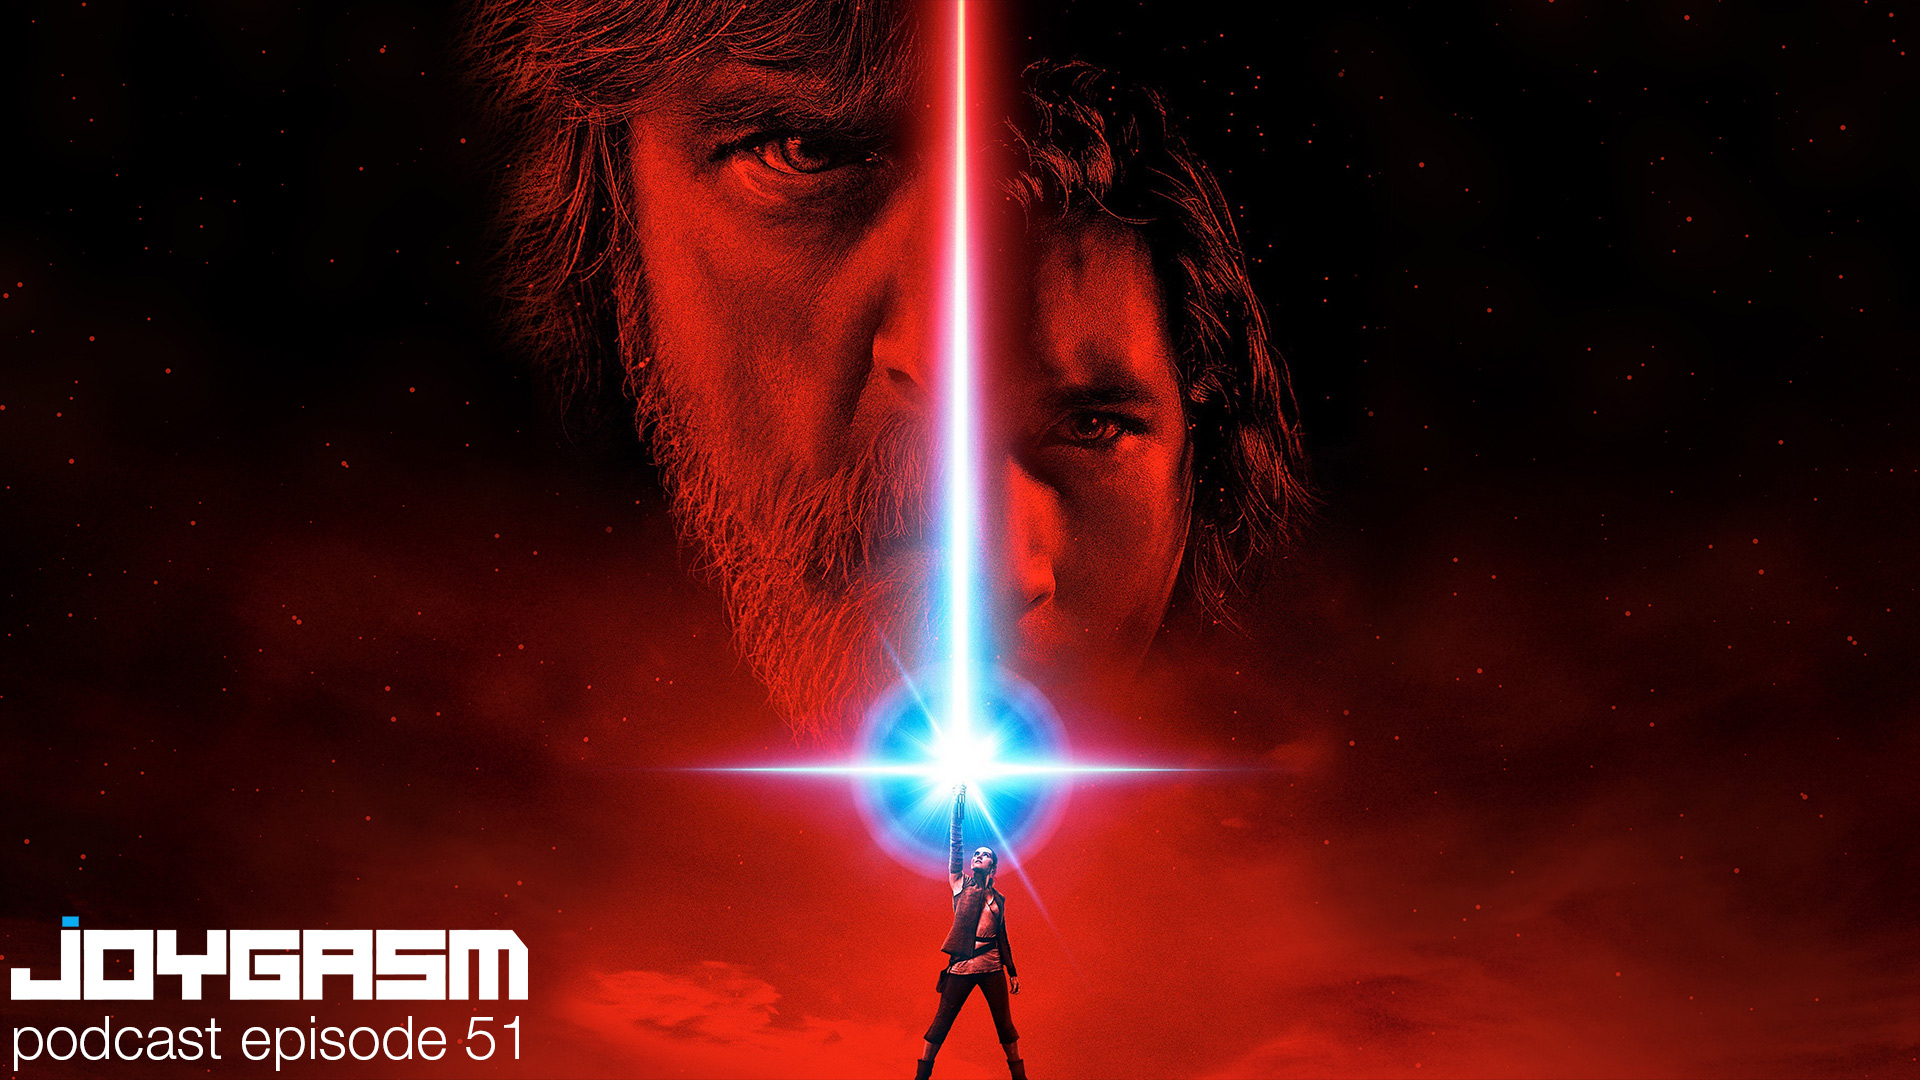 Joygasm Podcast Ep. 51: Star Wars: The Last Jedi REVIEW